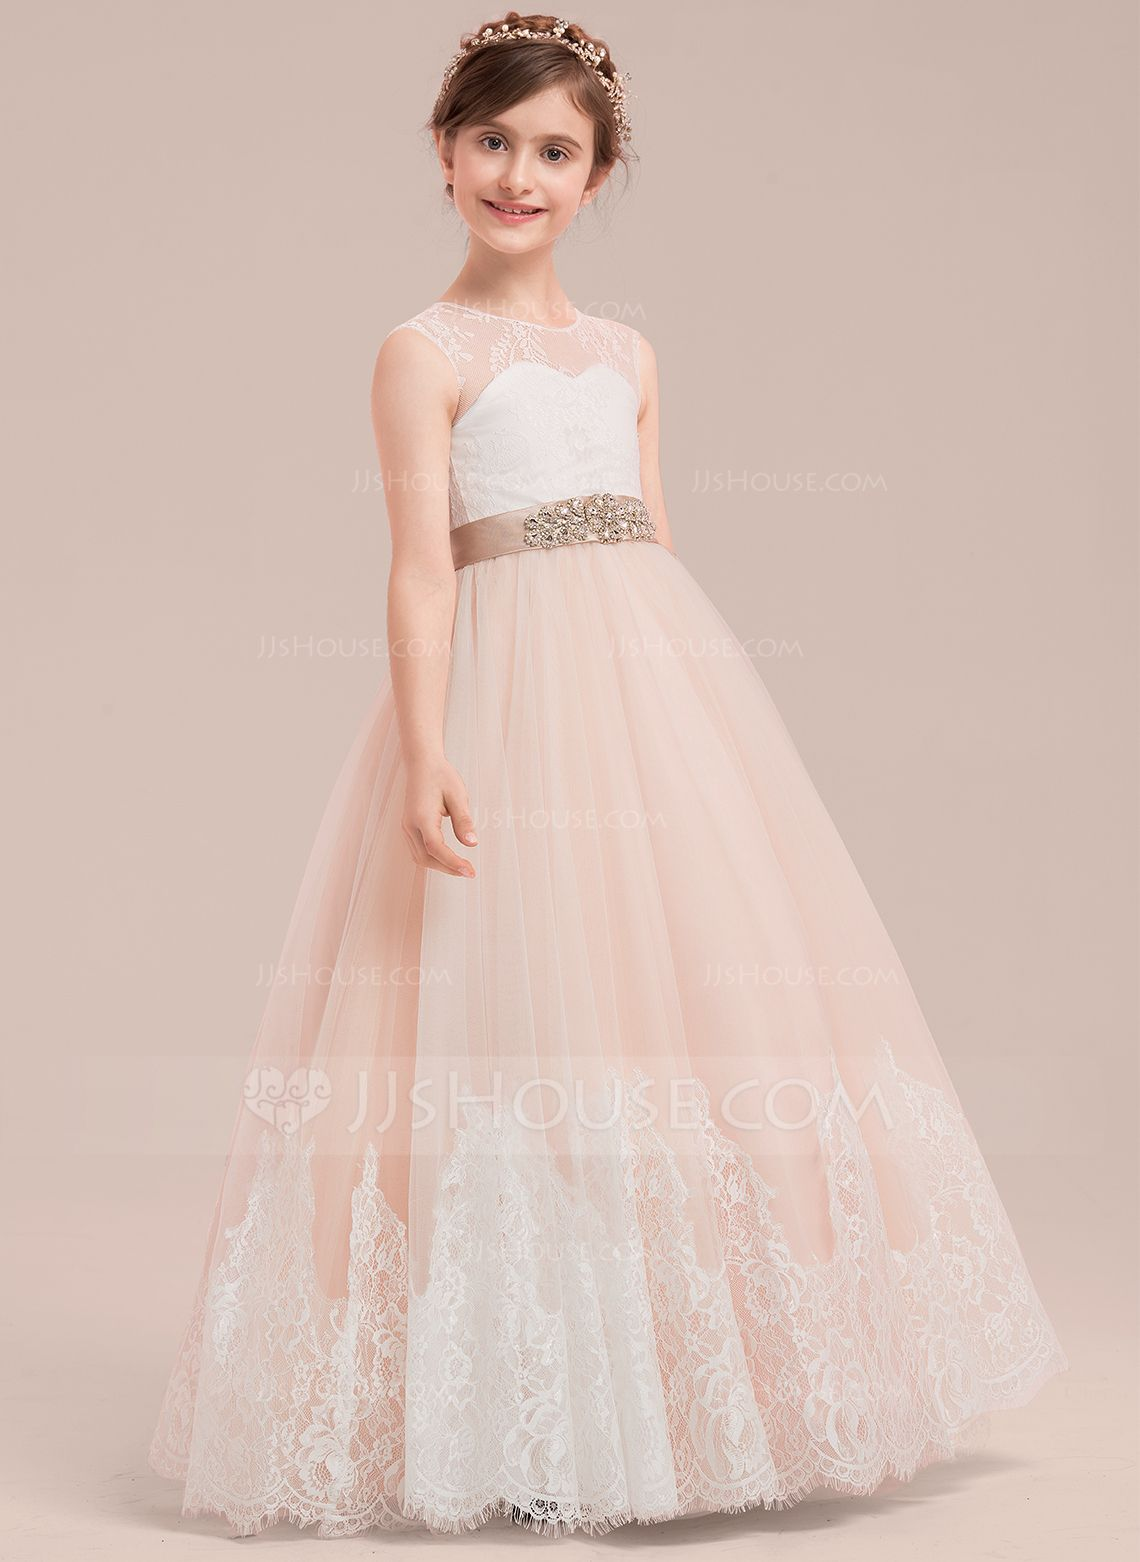 a08f7911b5 Ball Gown Floor-length Flower Girl Dress - Satin Tulle Lace Sleeveless Scoop  Neck With Rhinestone (010143277) - JJsHouse